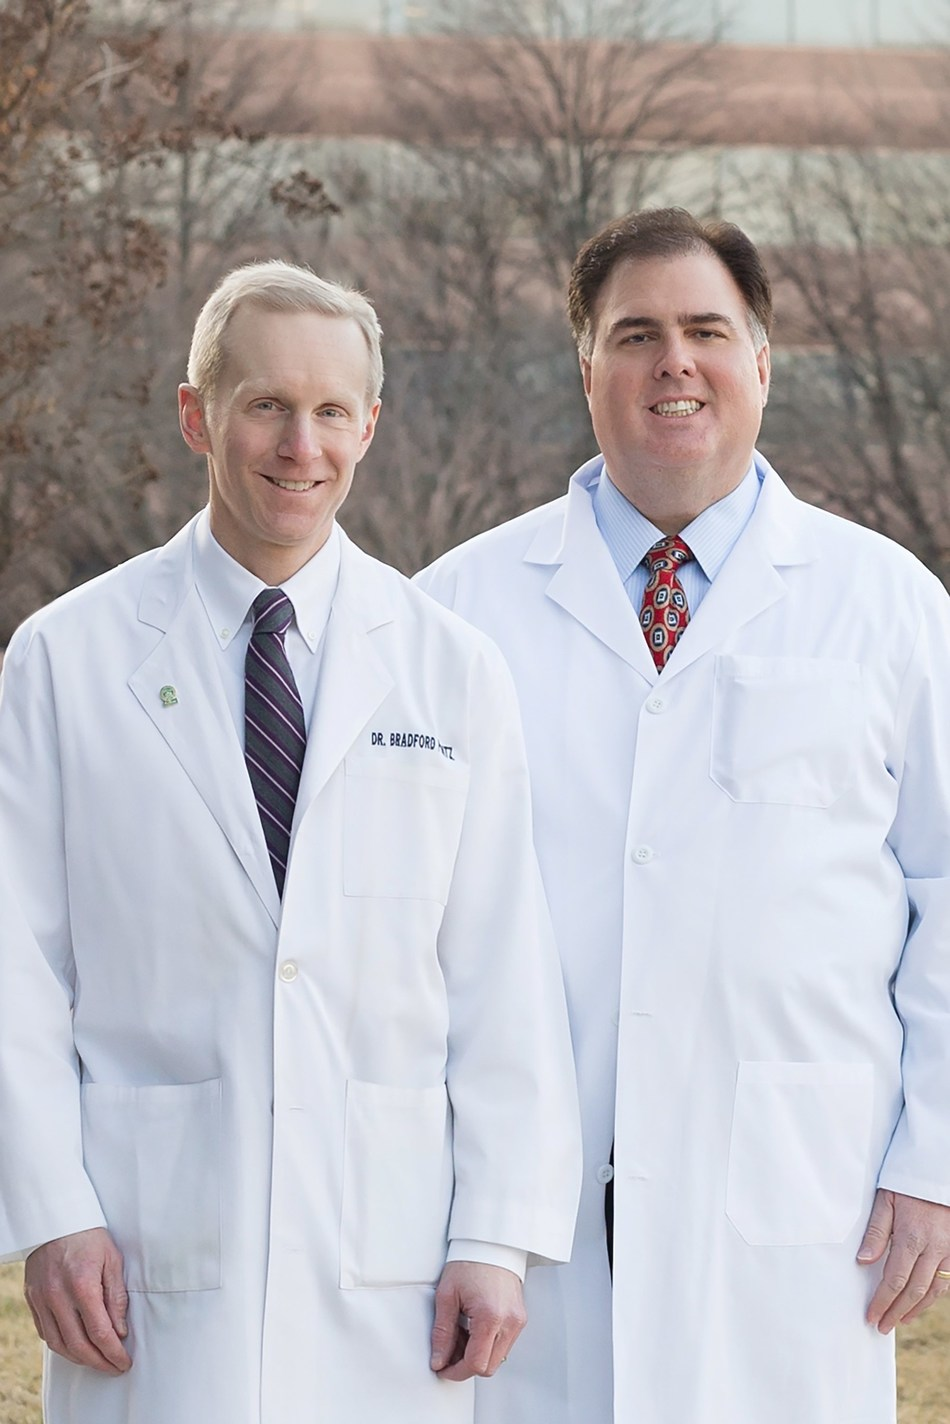 Bradford S. Pontz, MD and Eric S. Vallone, MD launched NOVAMED Associates Concierge Care, a membership medicine practice offering highly personalized care to the Fairfax community. In an era of continued uncertainty for healthcare, concierge medicine continues to grow in the northern Virginia area as a rewarding and satisfying model for physicians and their patients.